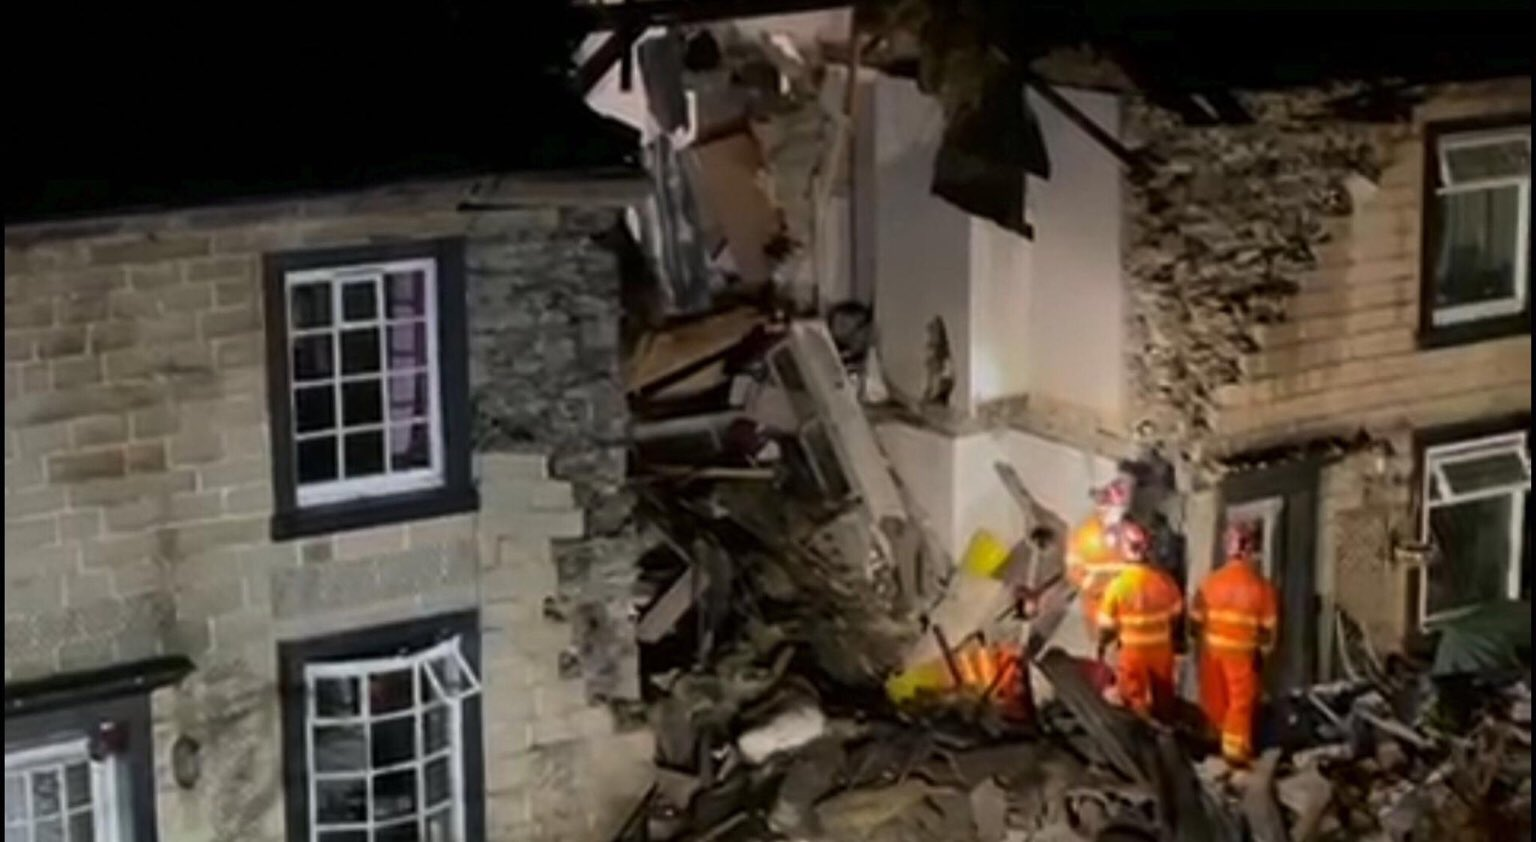 Emergency services attend scene after house collapses in Ramsbottom, The Manc